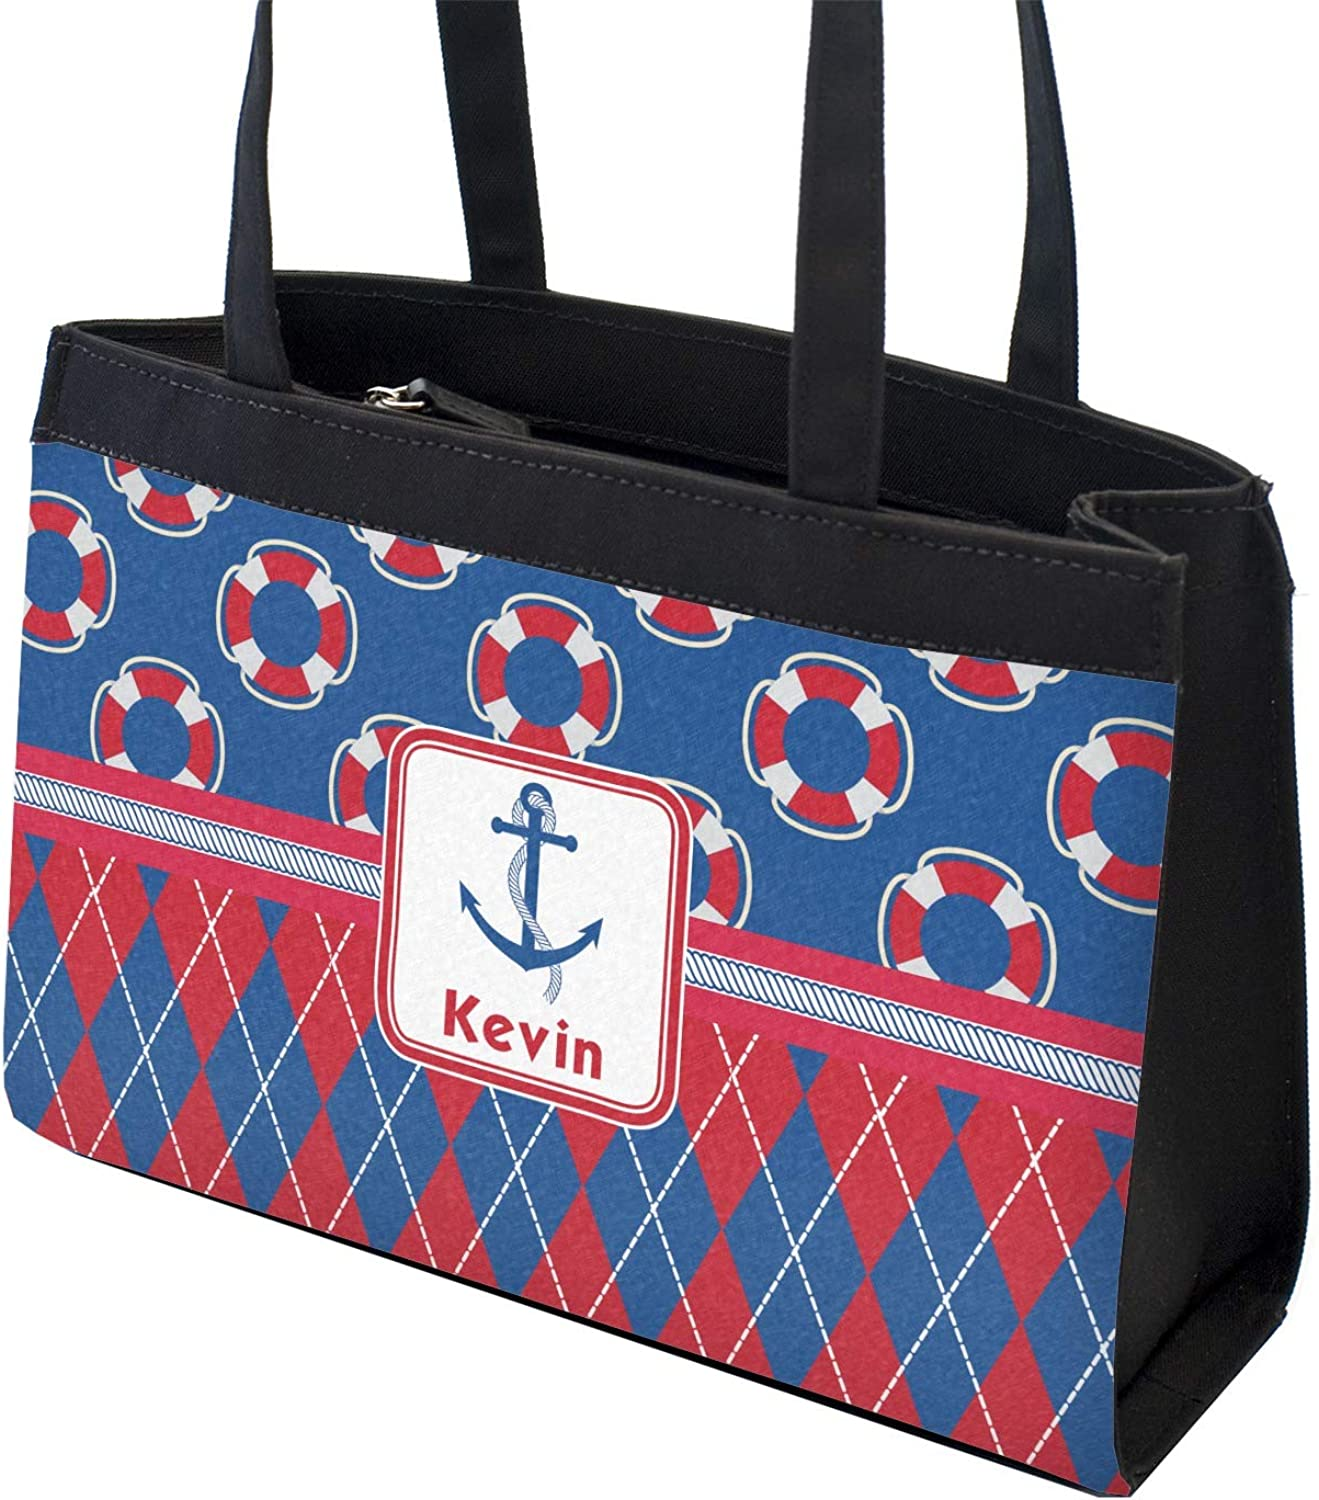 Buoy /& Argyle Print Zippered Everyday Tote Personalized Front